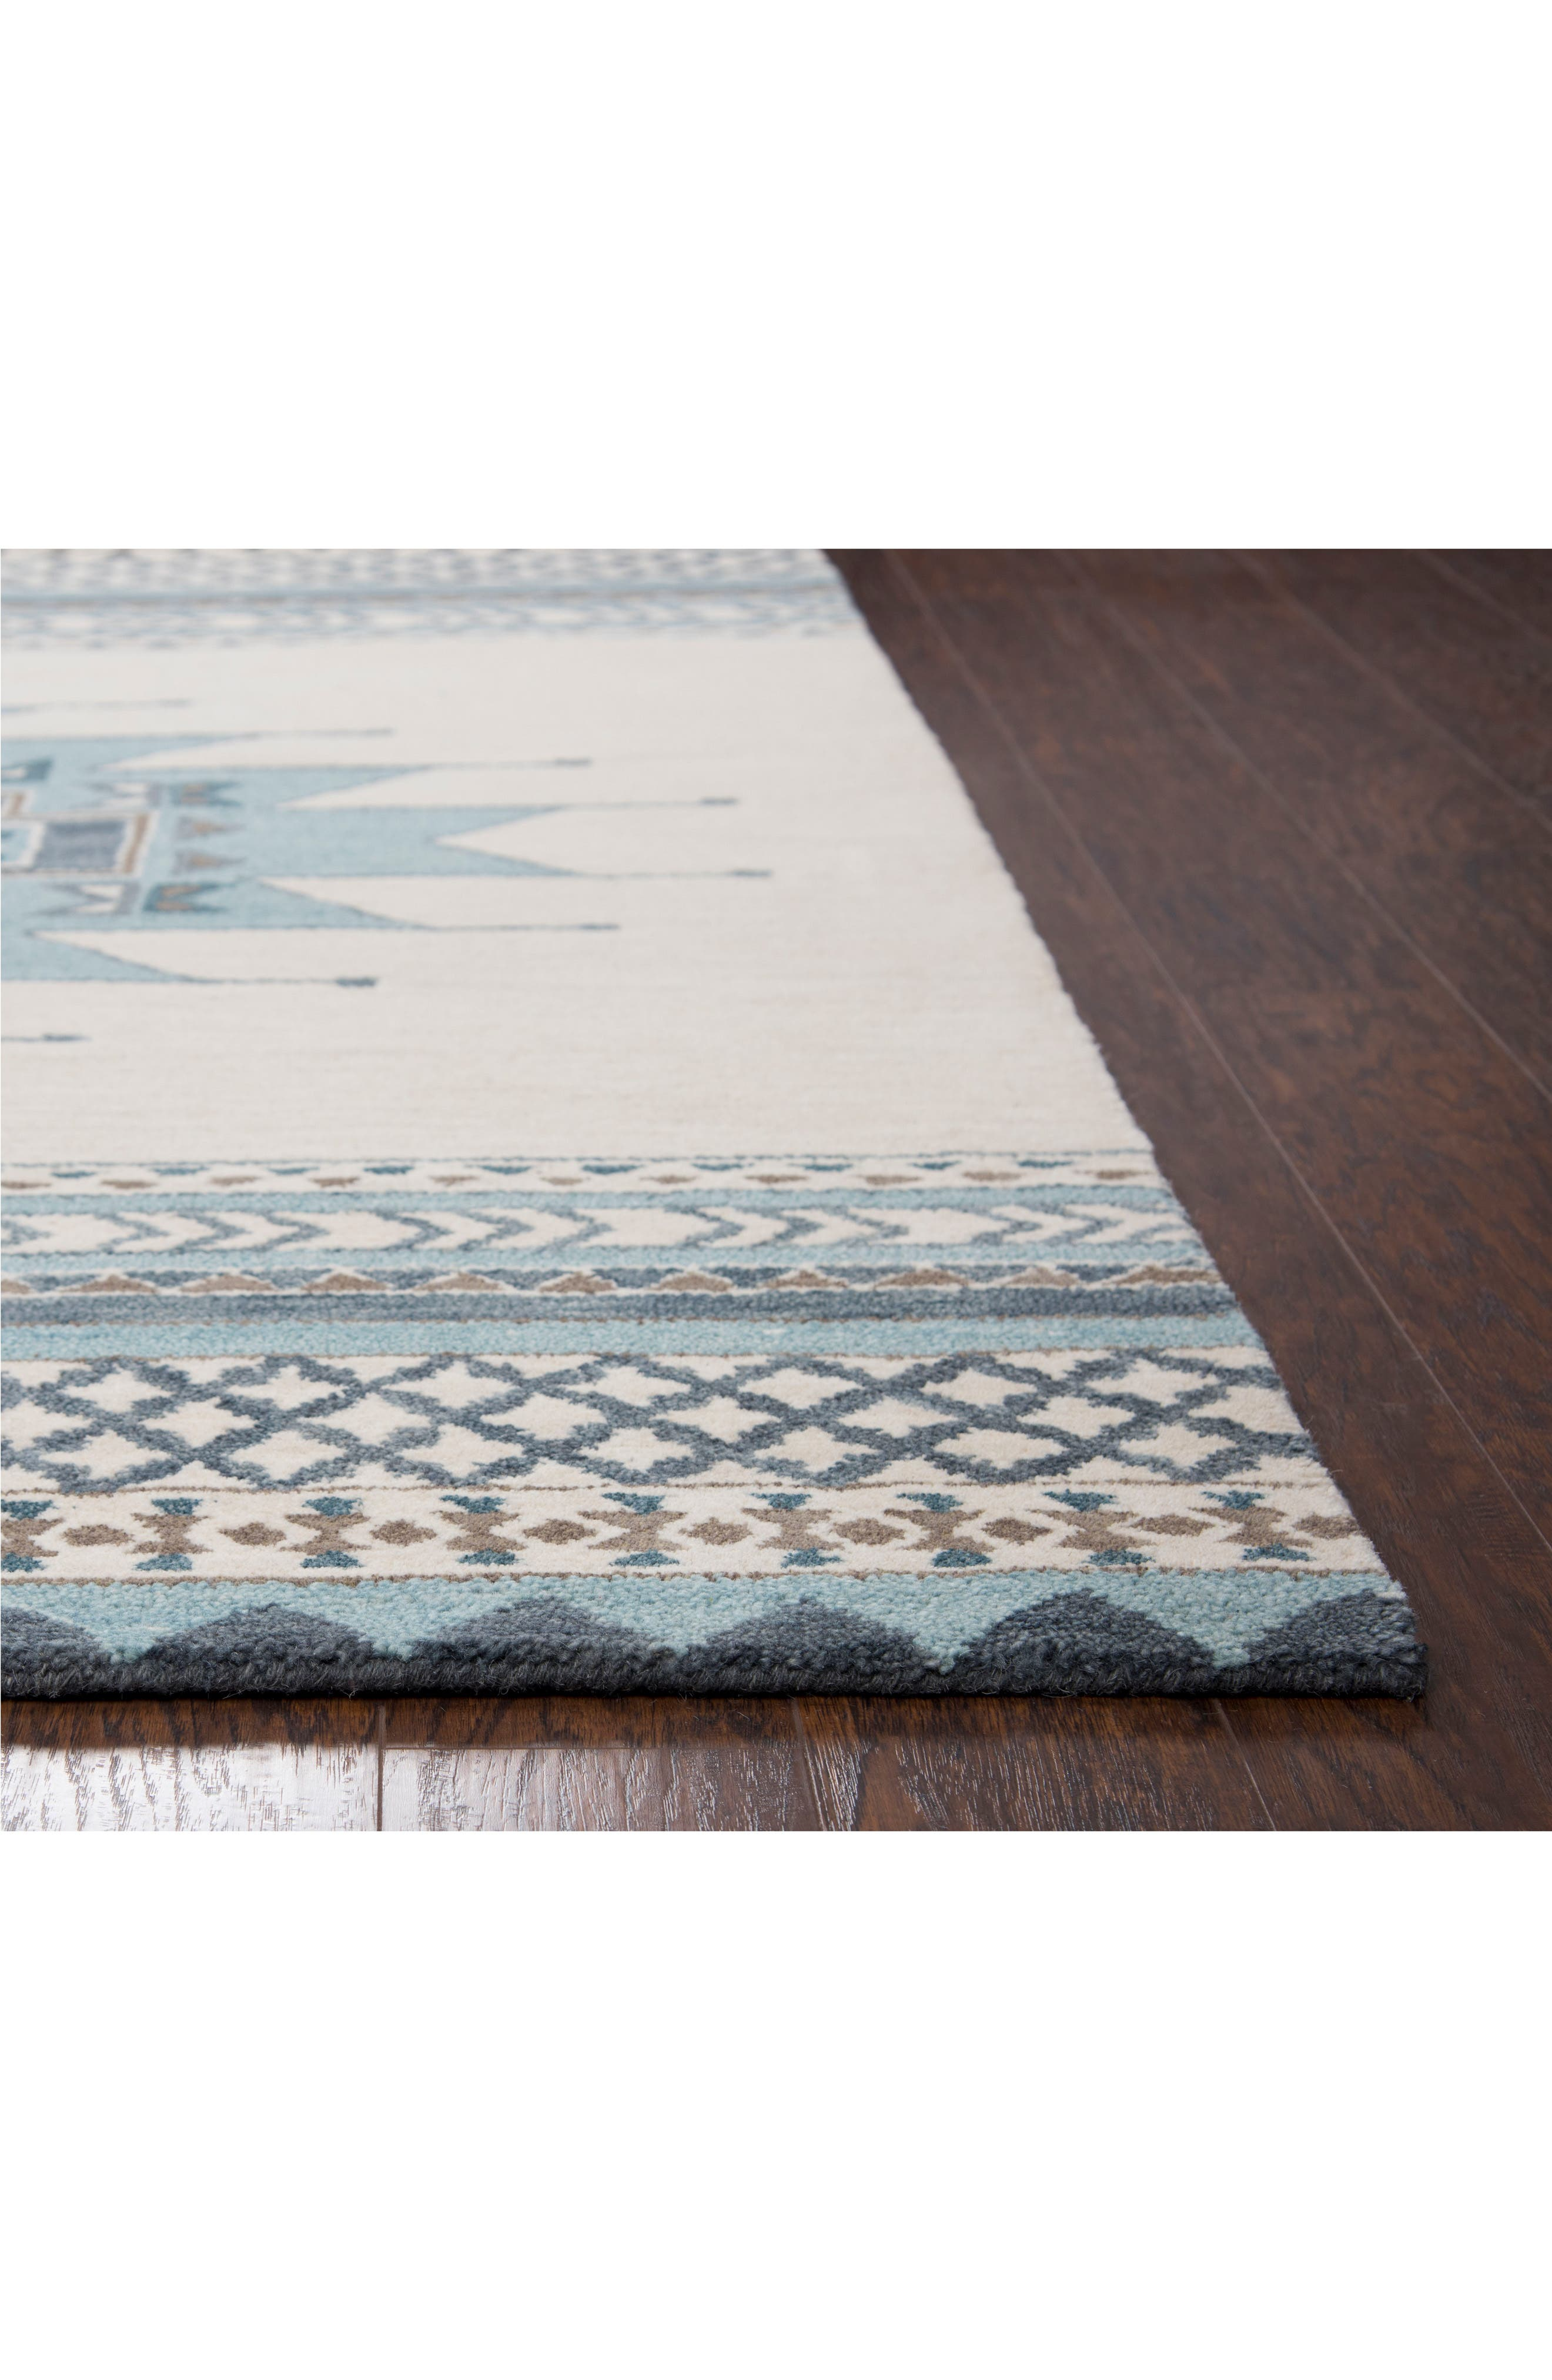 Hand Tufted Wool Blanket Rug,                             Alternate thumbnail 2, color,                             400